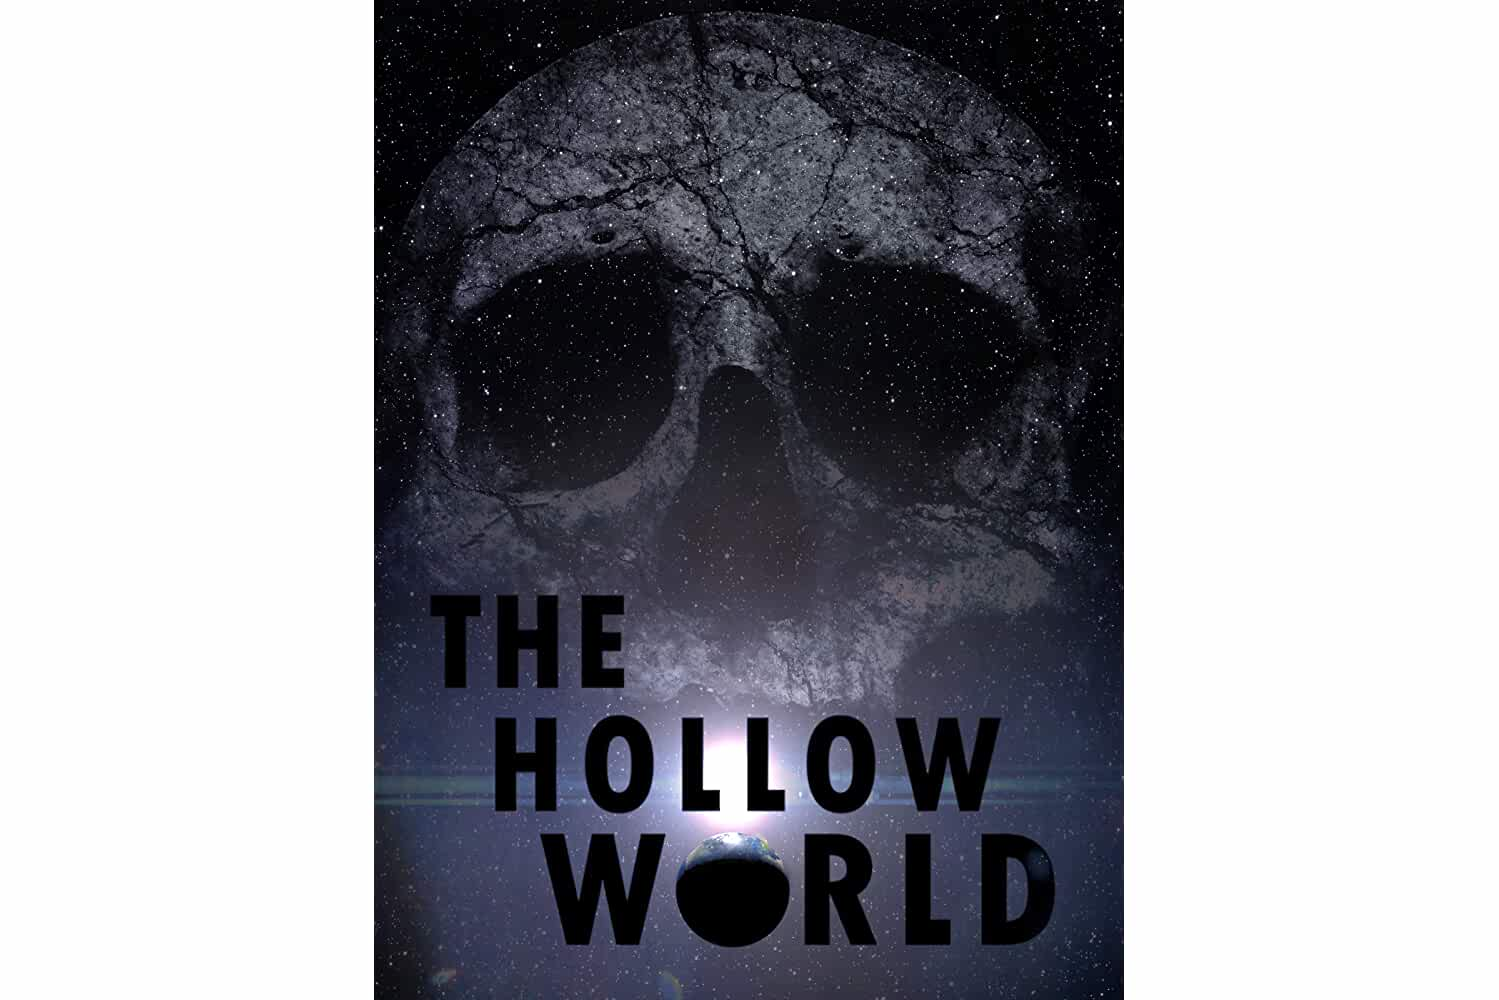 The Hollow World (2018)